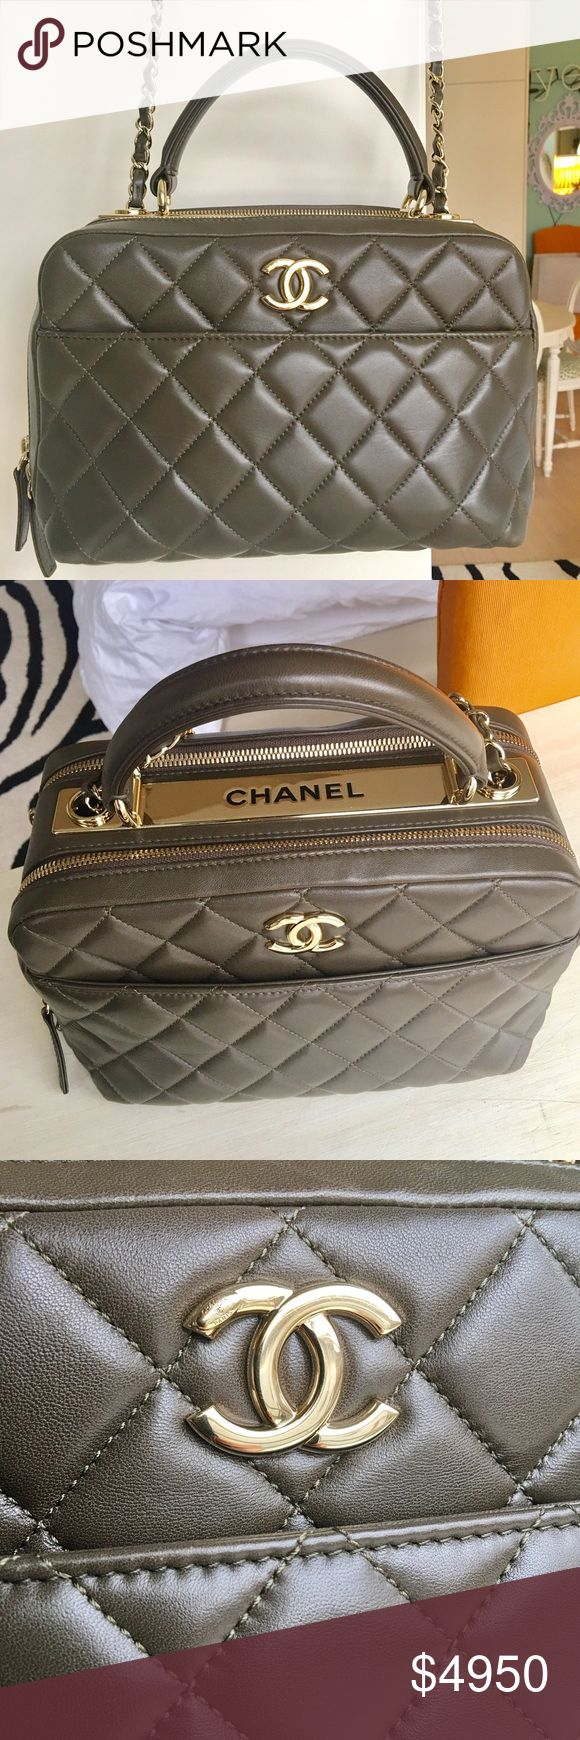 2016 Fall Chanel Trendy CC Small Bowling Bag 100% Authentic! Worn a couple of times. In very good condition! slight hairline scratches on hardware(see pic). Comes with Original Receipt, Authenticity Card & Box. Dimensions are. (6.3 X 10.6 X 5.5 IN) / (16 X 27 X 14 CM). Lambskin leather,  In Hard to get Green color. Gold Hardware. This is part of the new 2016 Fall Chanel Metiers d' Art Bag Collection, (which is in stores now if you can get your hands on one!) Which were presented at the…